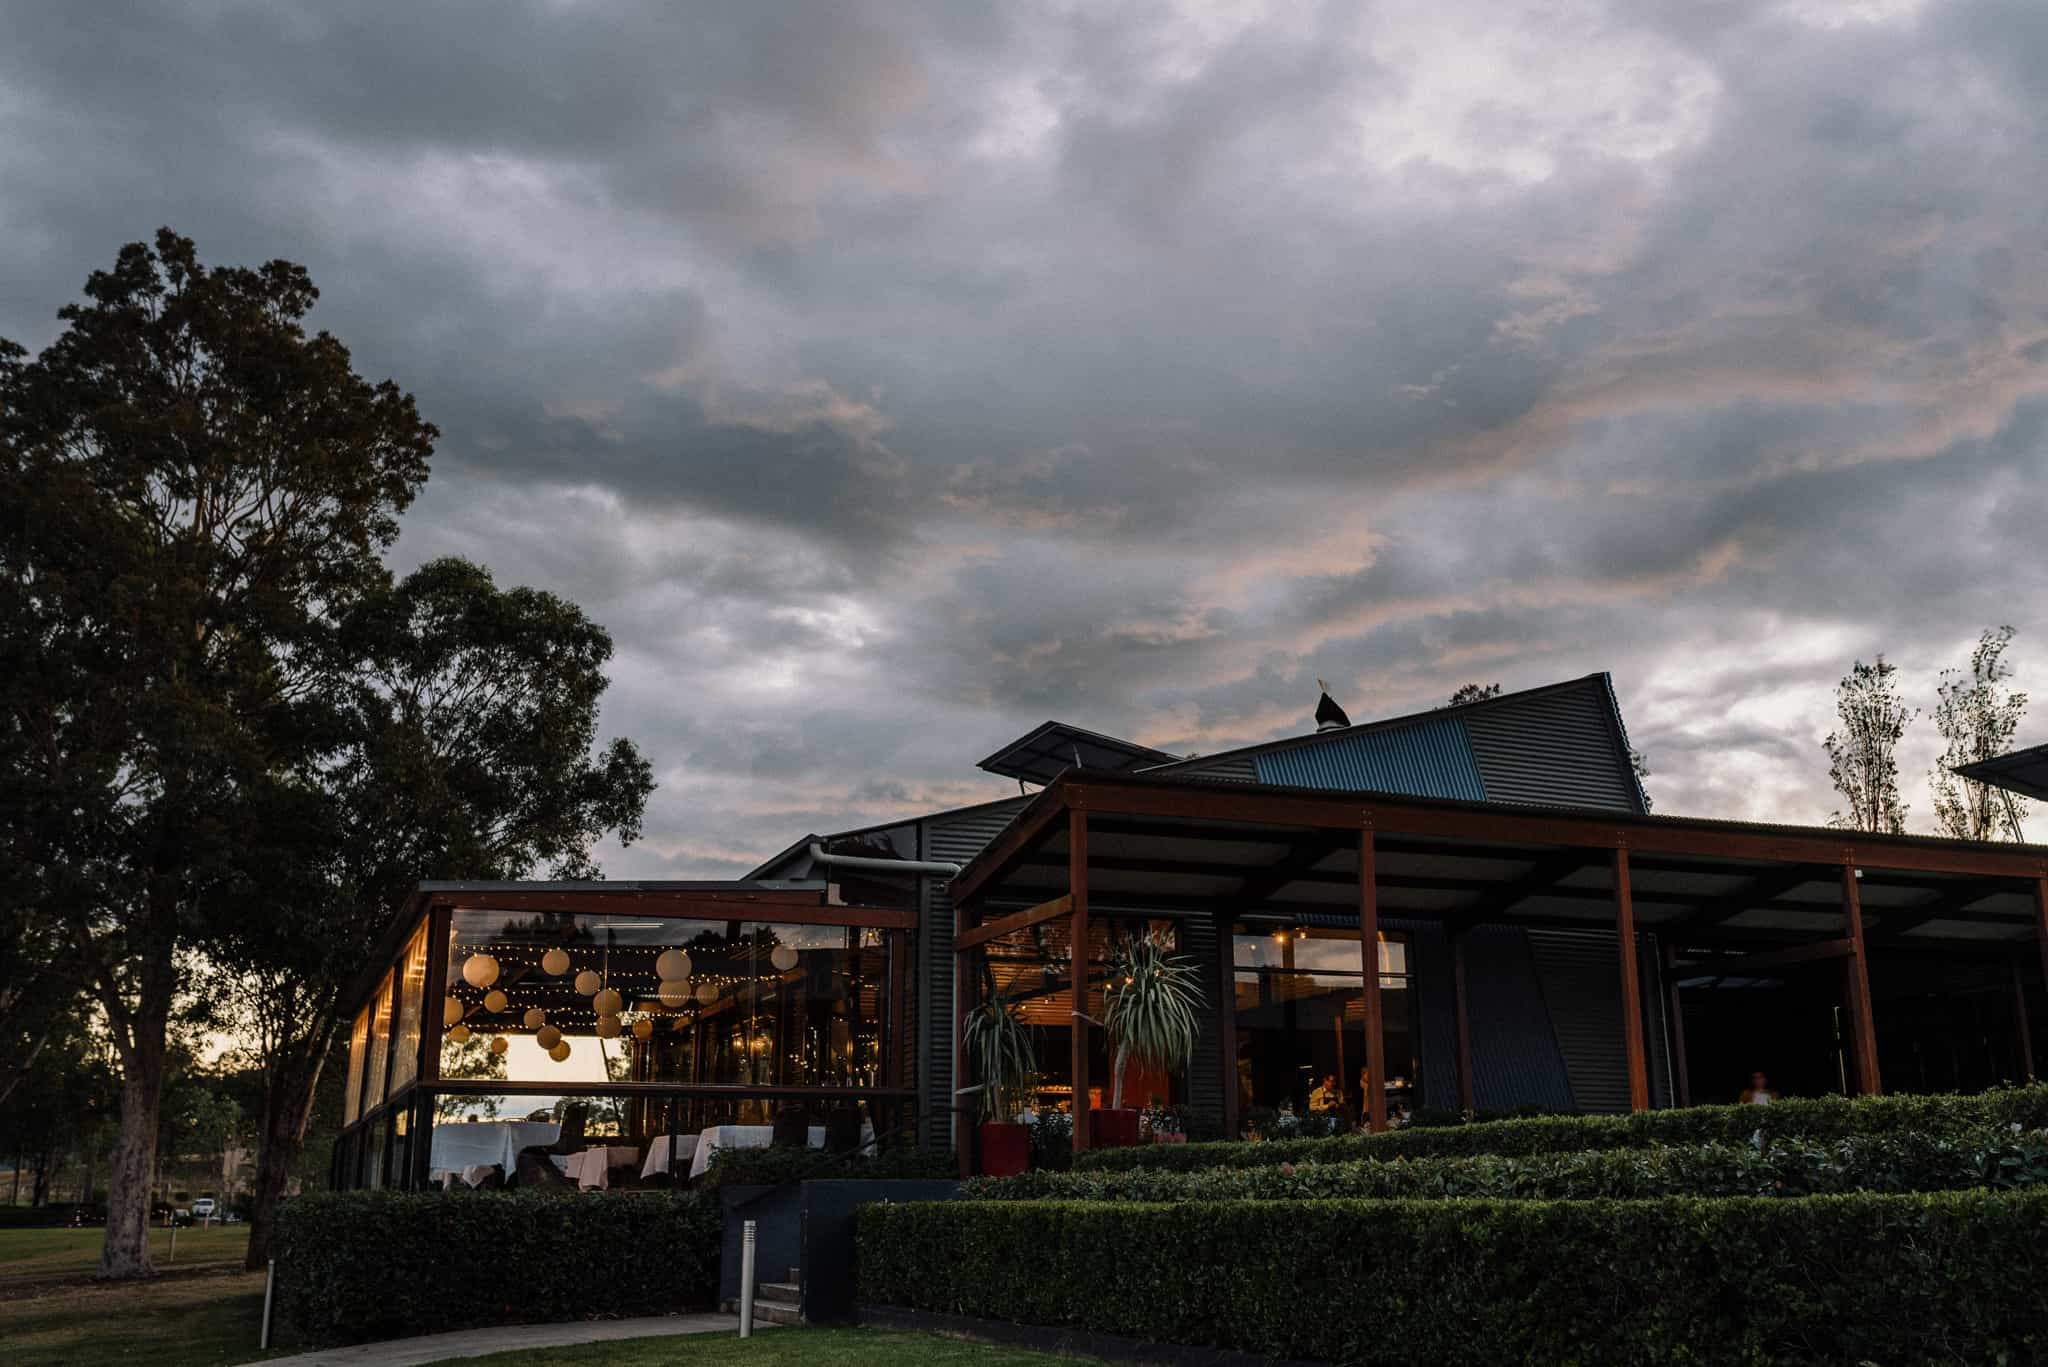 the best hunter valley wedding venues are the versatile venues which can cater to anyone